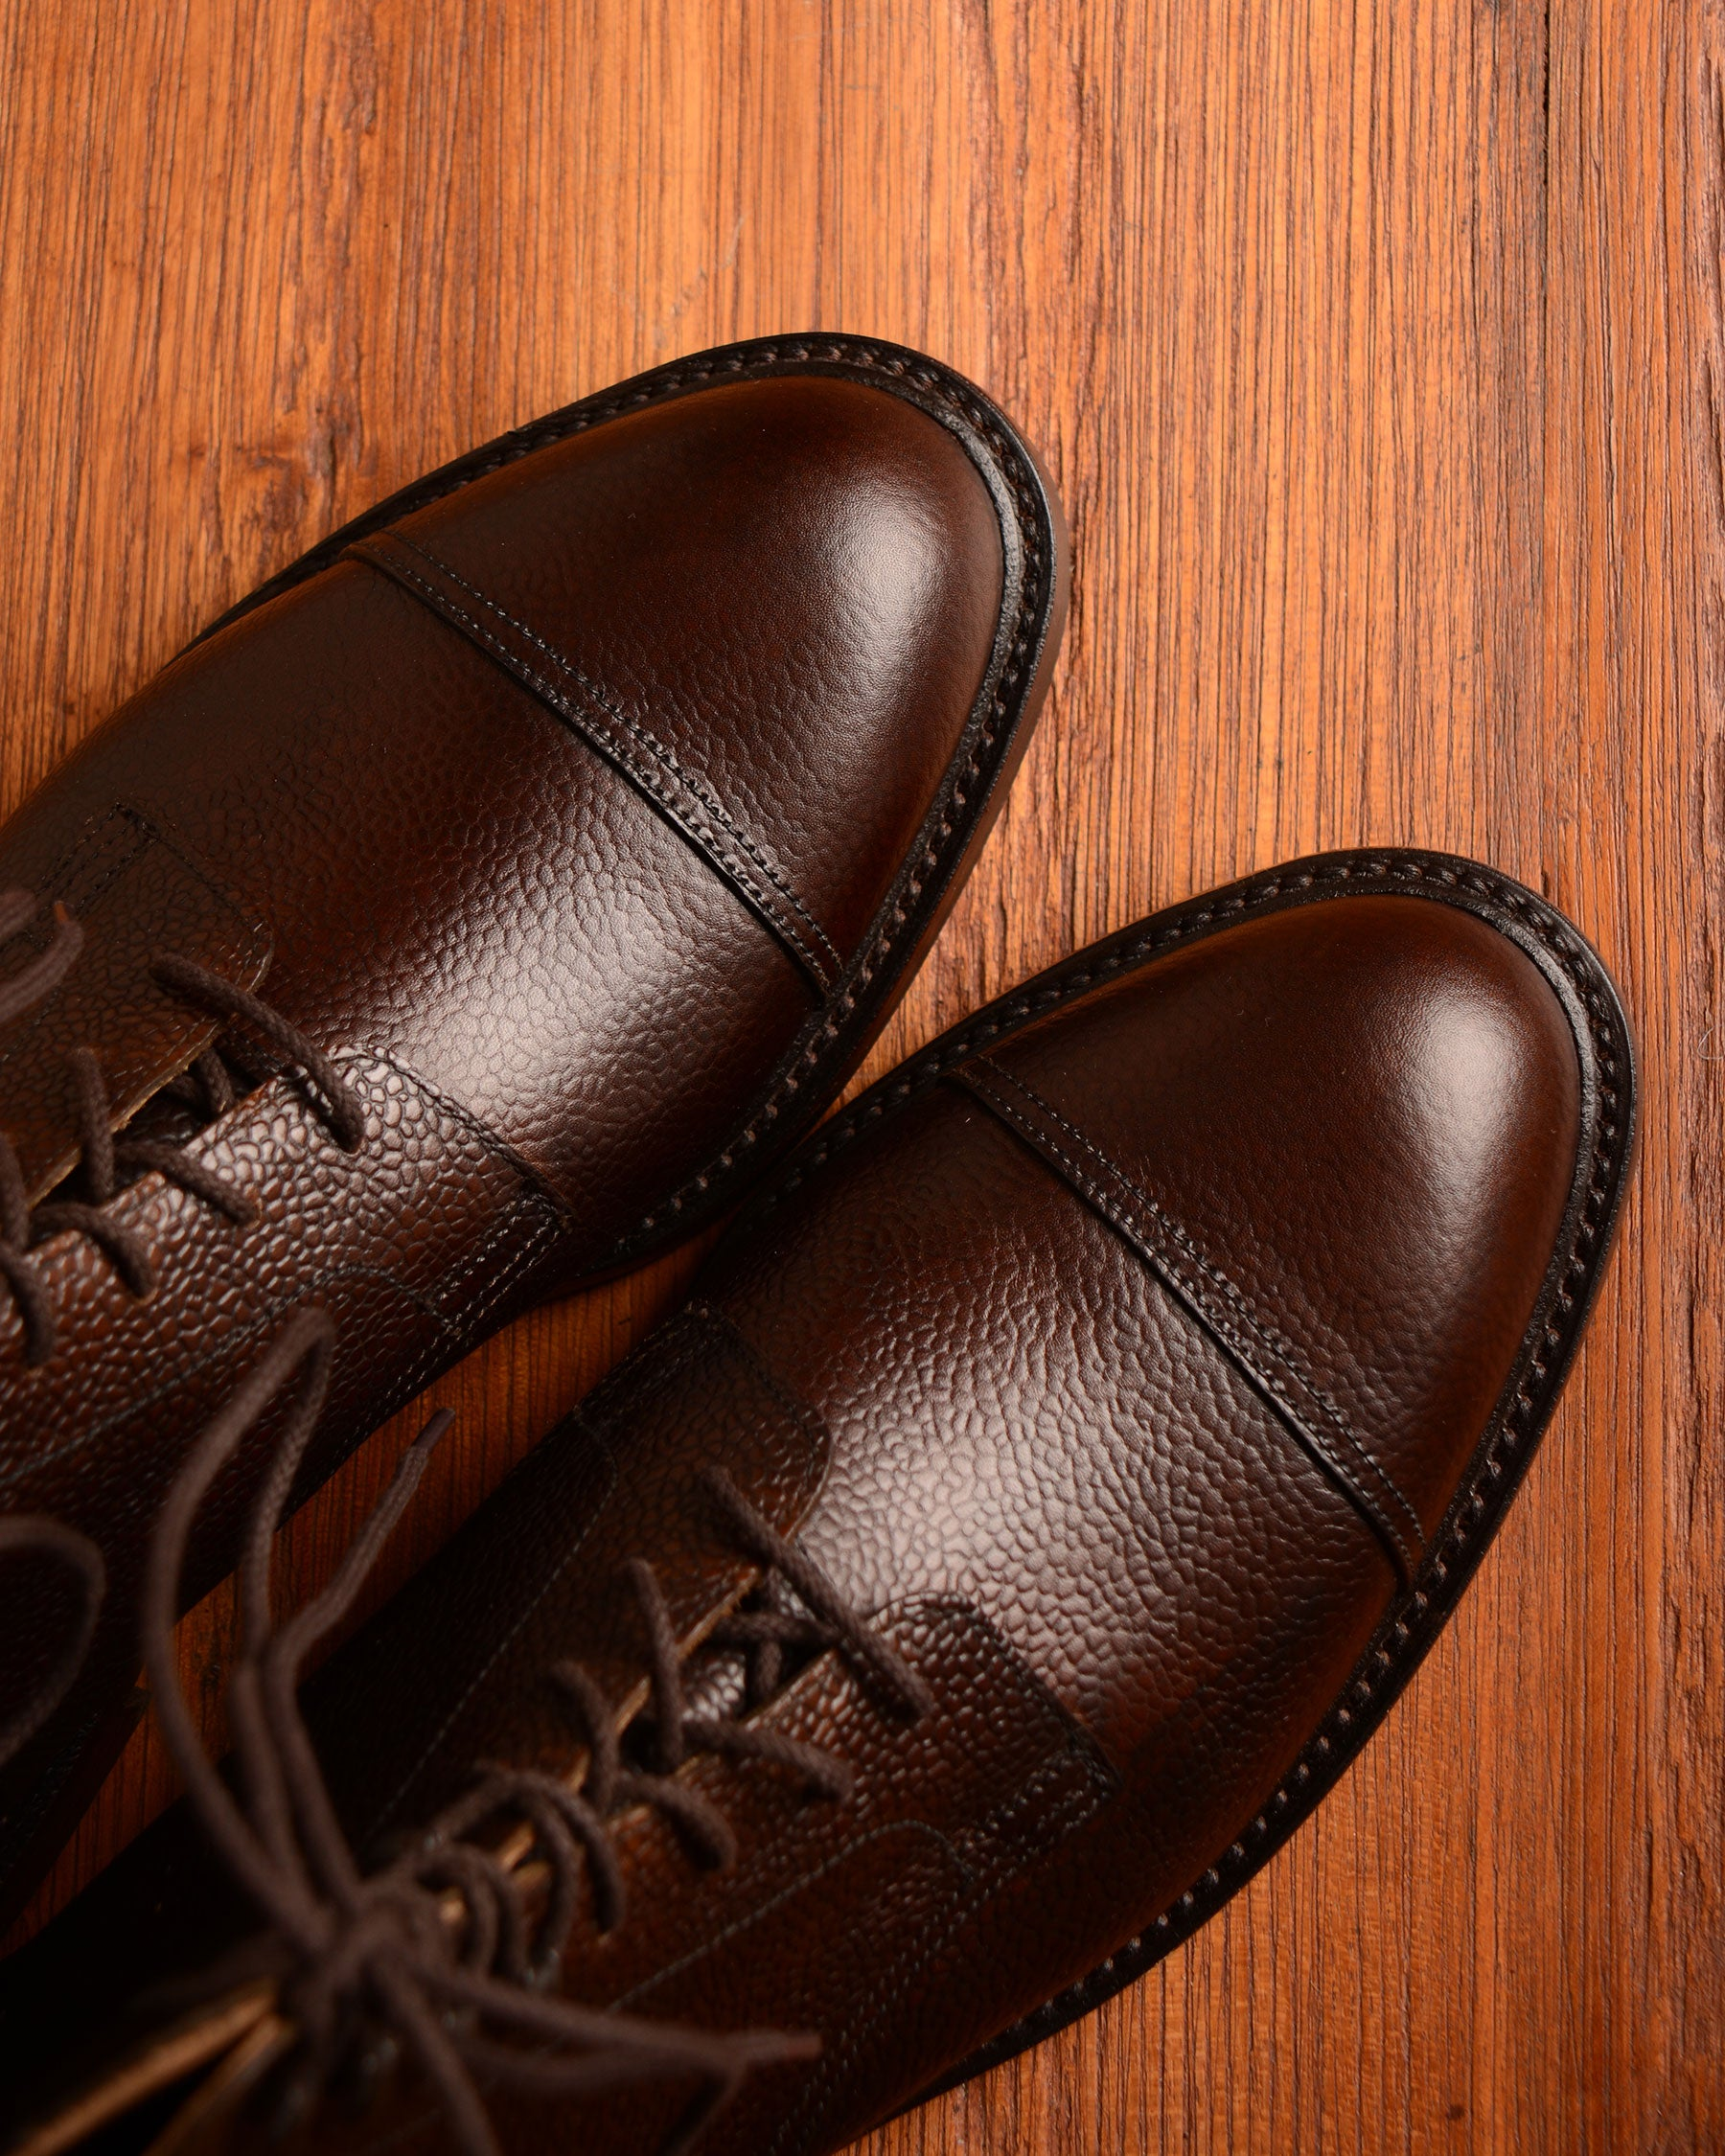 Crockett & Jones Coniston - Dark Brown Grain